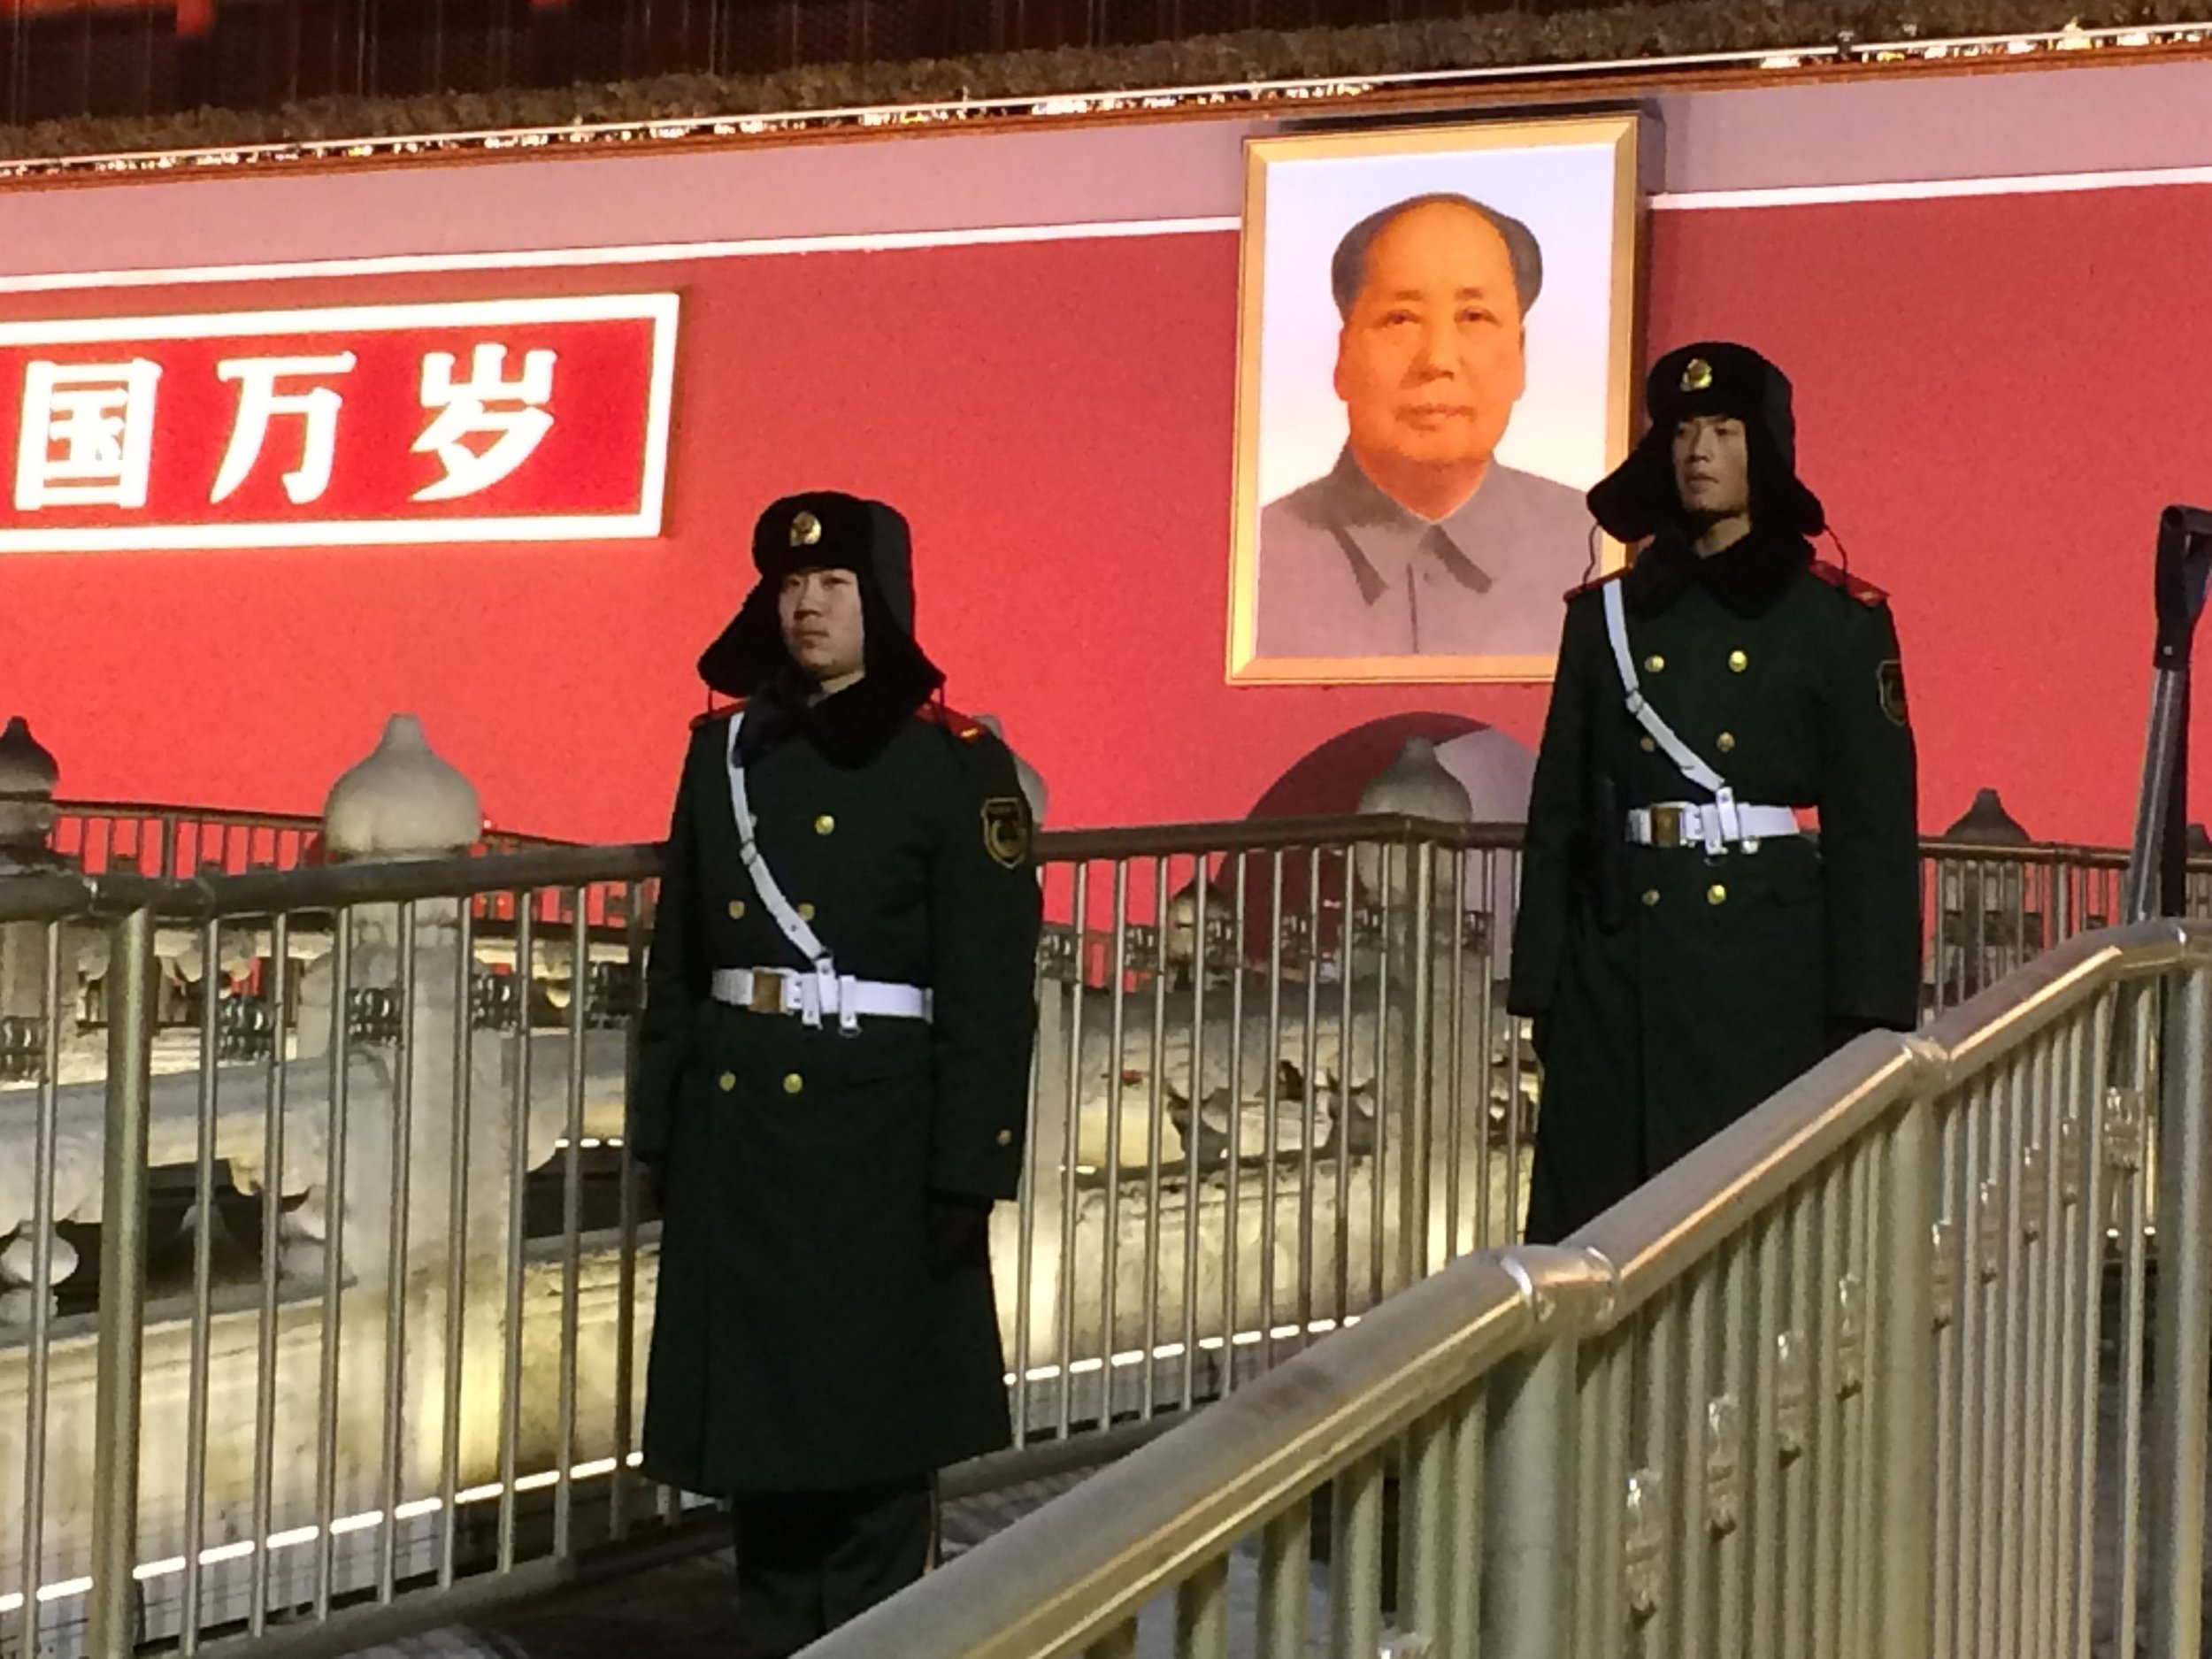 Guards beneath the portrait of Mao at Tiananmen Gate